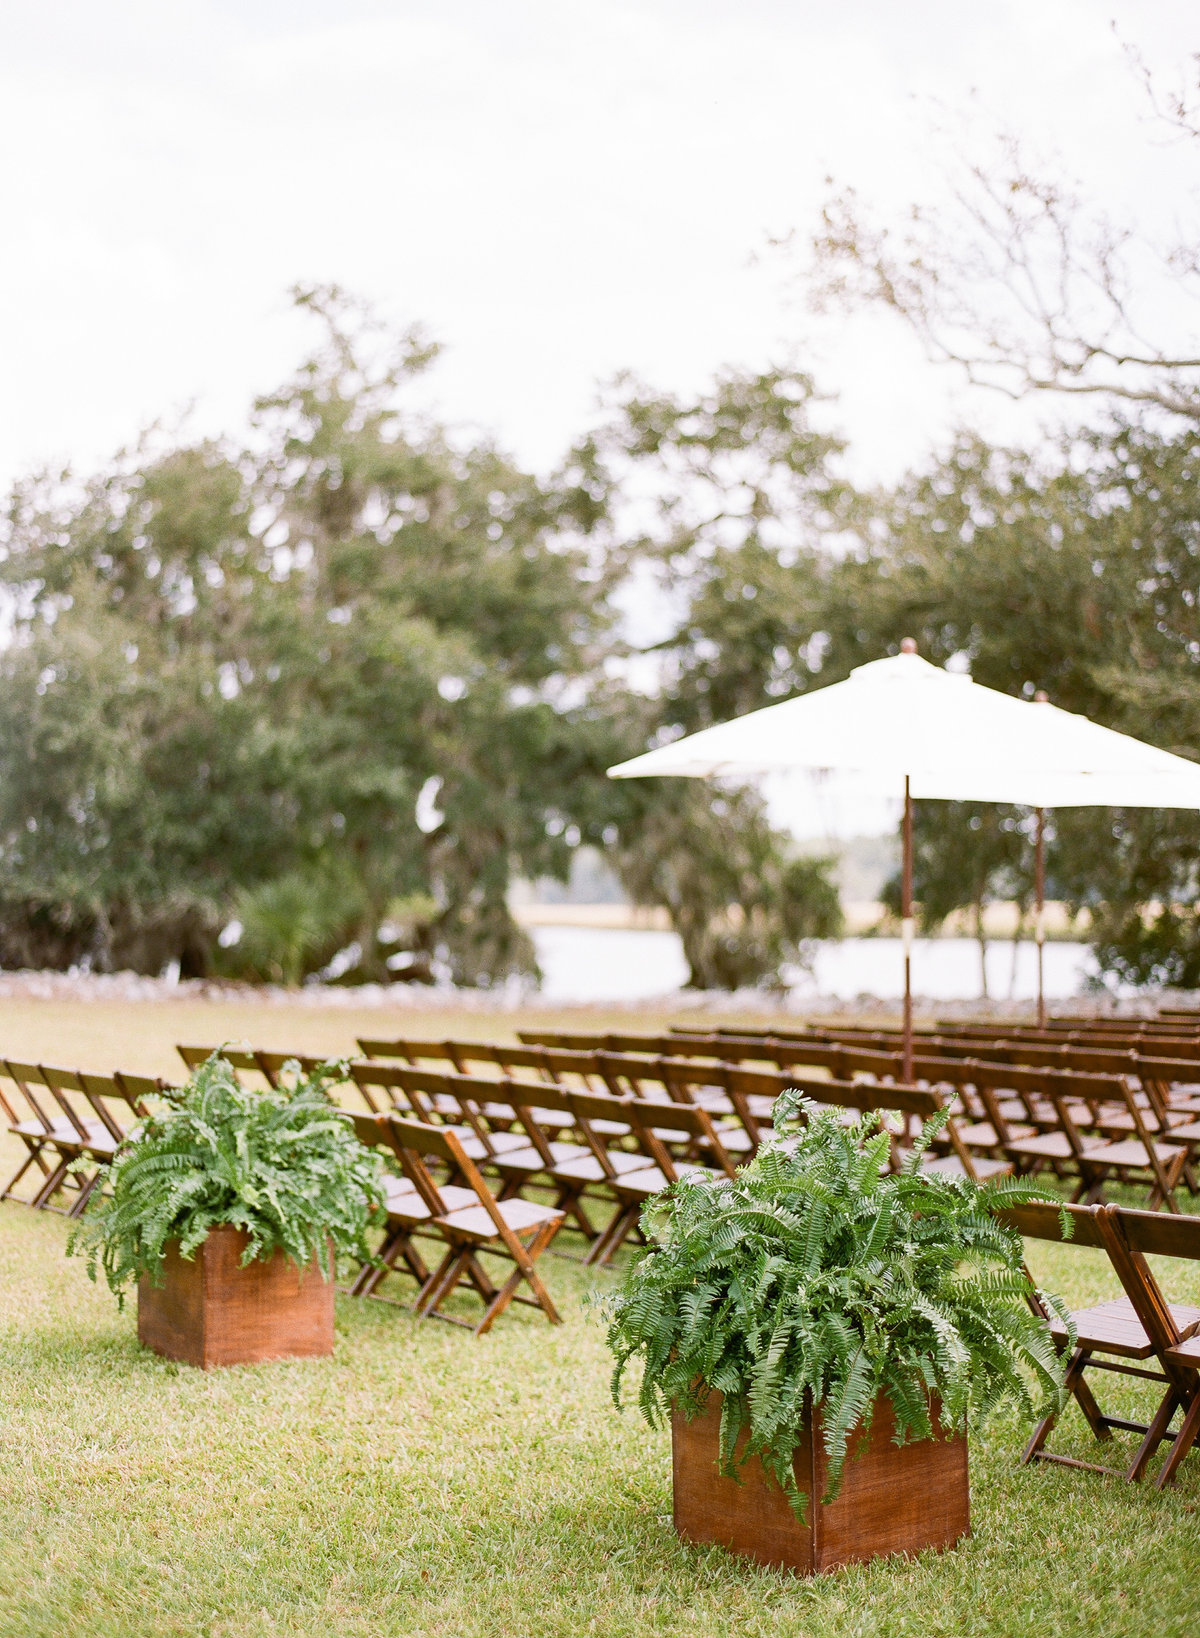 Charleston Wedding Ceremony with Beech Wood Chairs Ferns in Planters and White Umbrellas